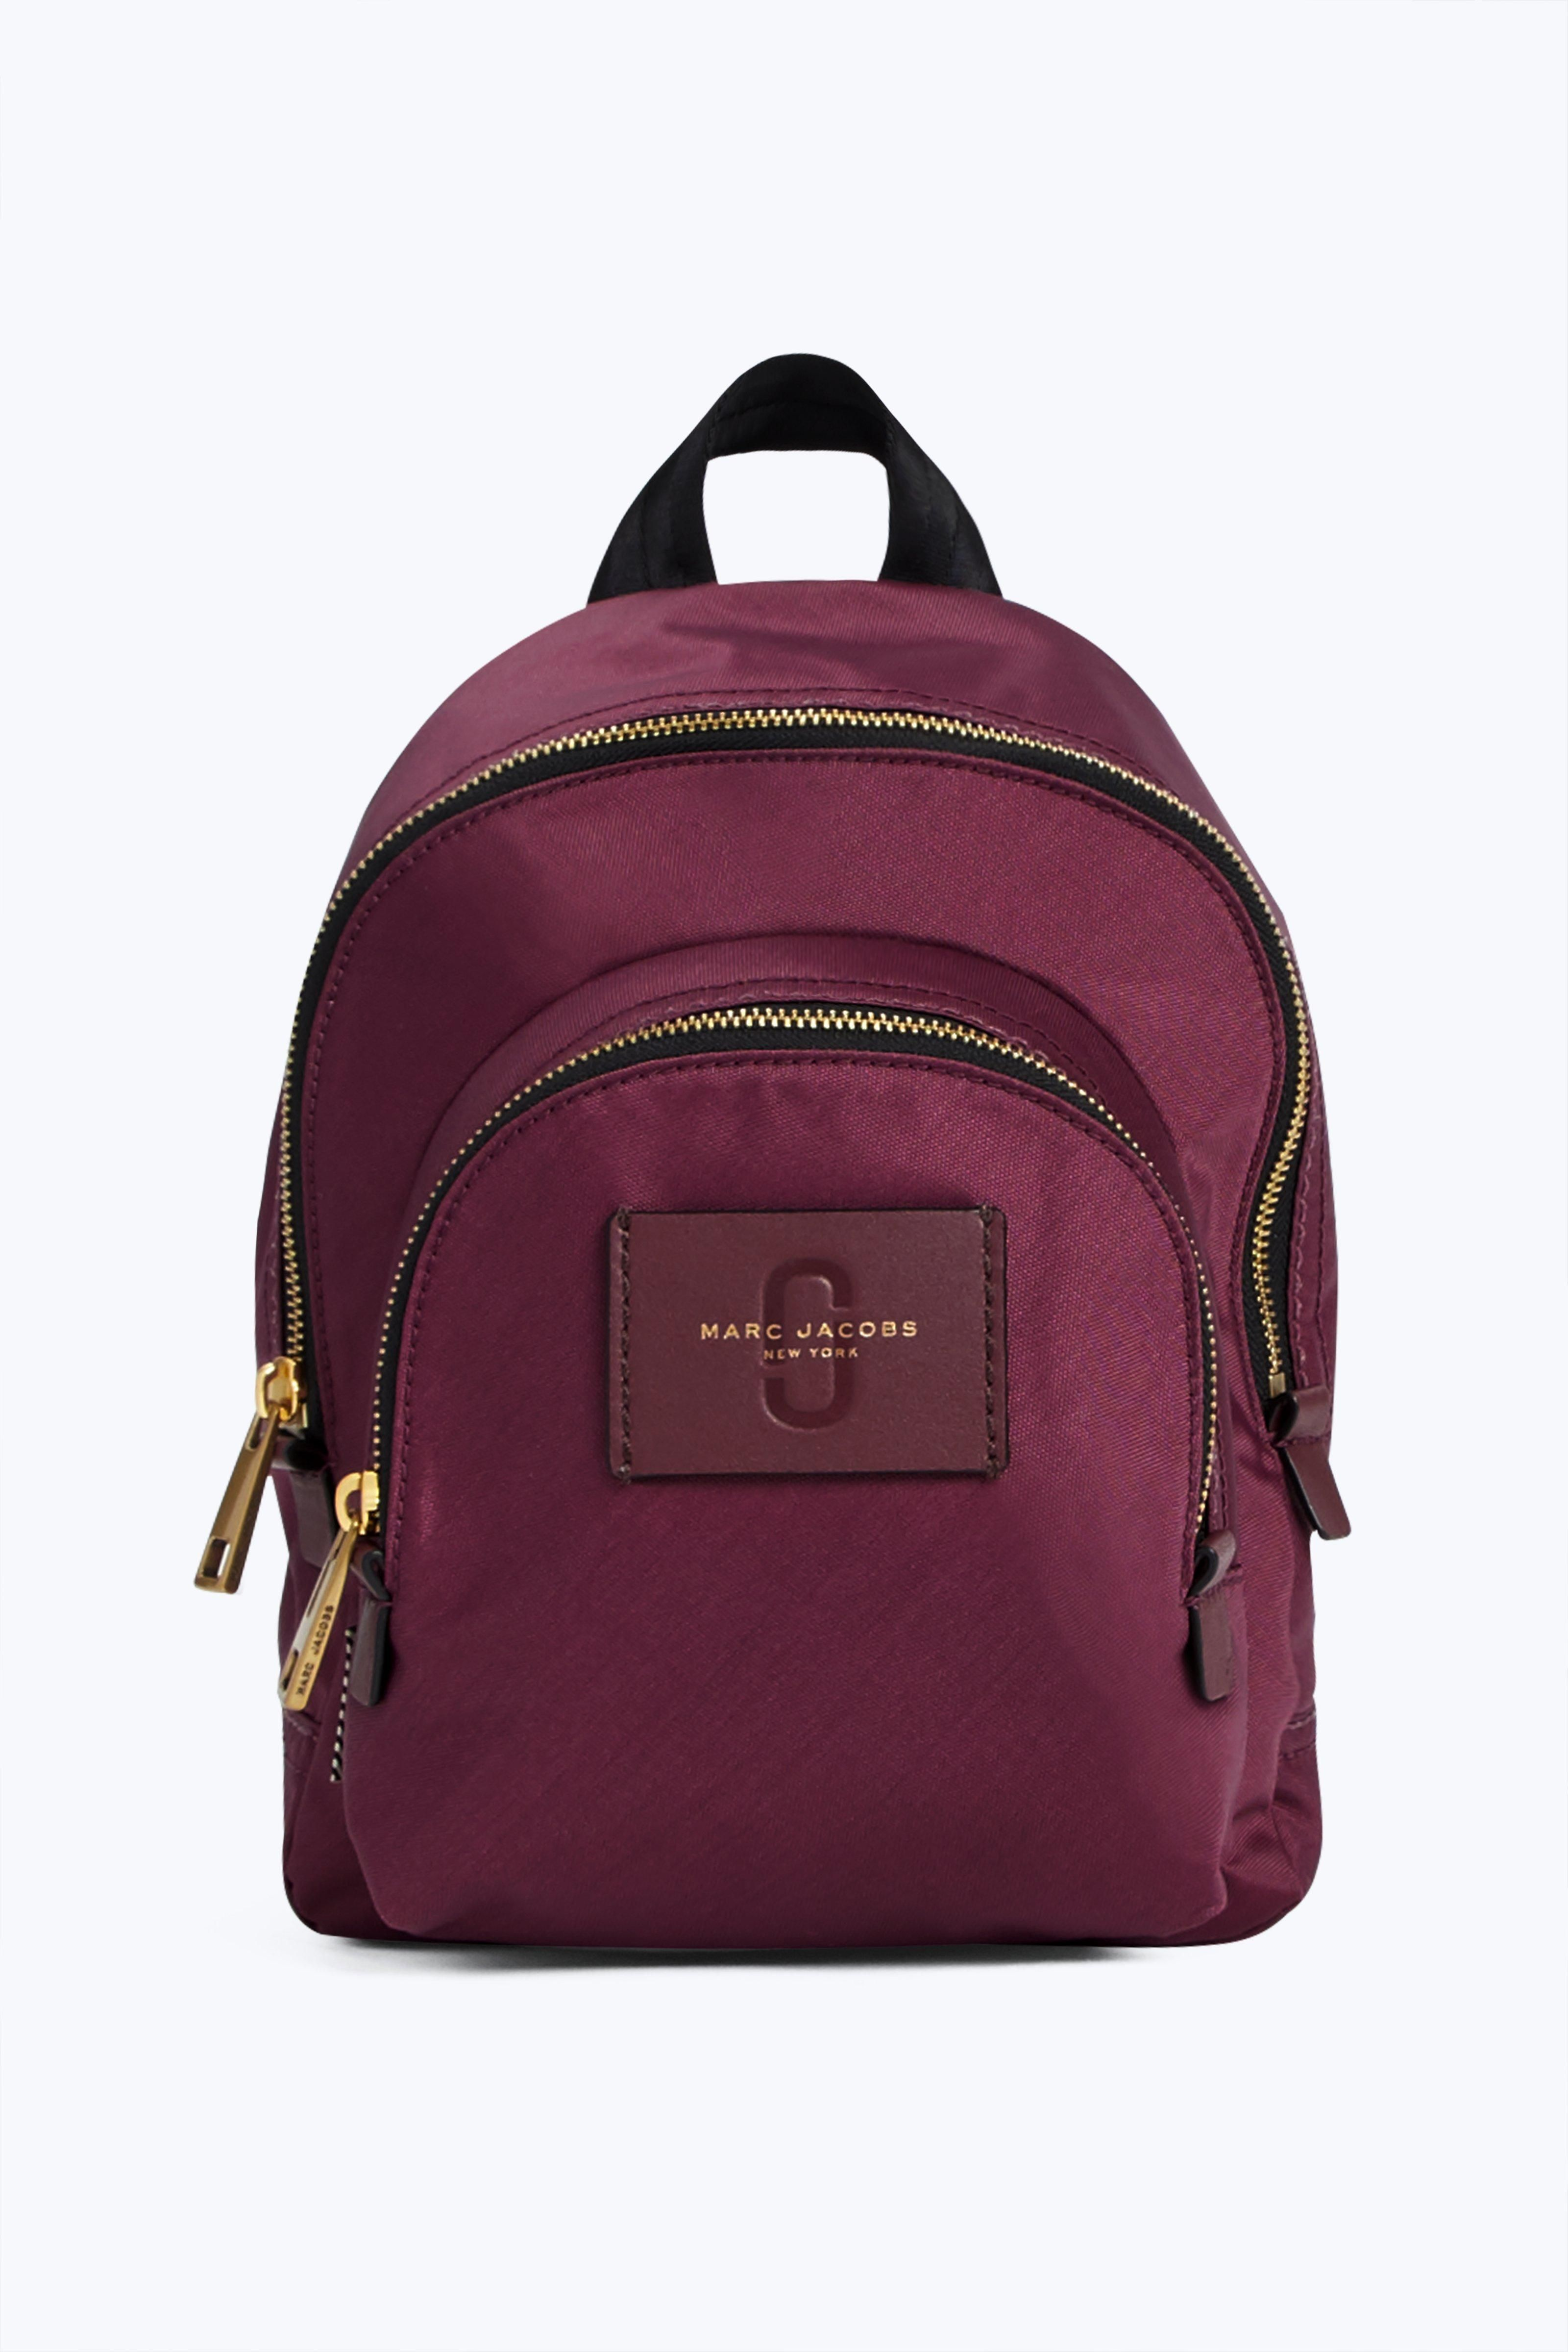 18c045971 MARC JACOBS Mini Double Zip Pack. #marcjacobs #bags #leather #polyester  #nylon #backpacks #